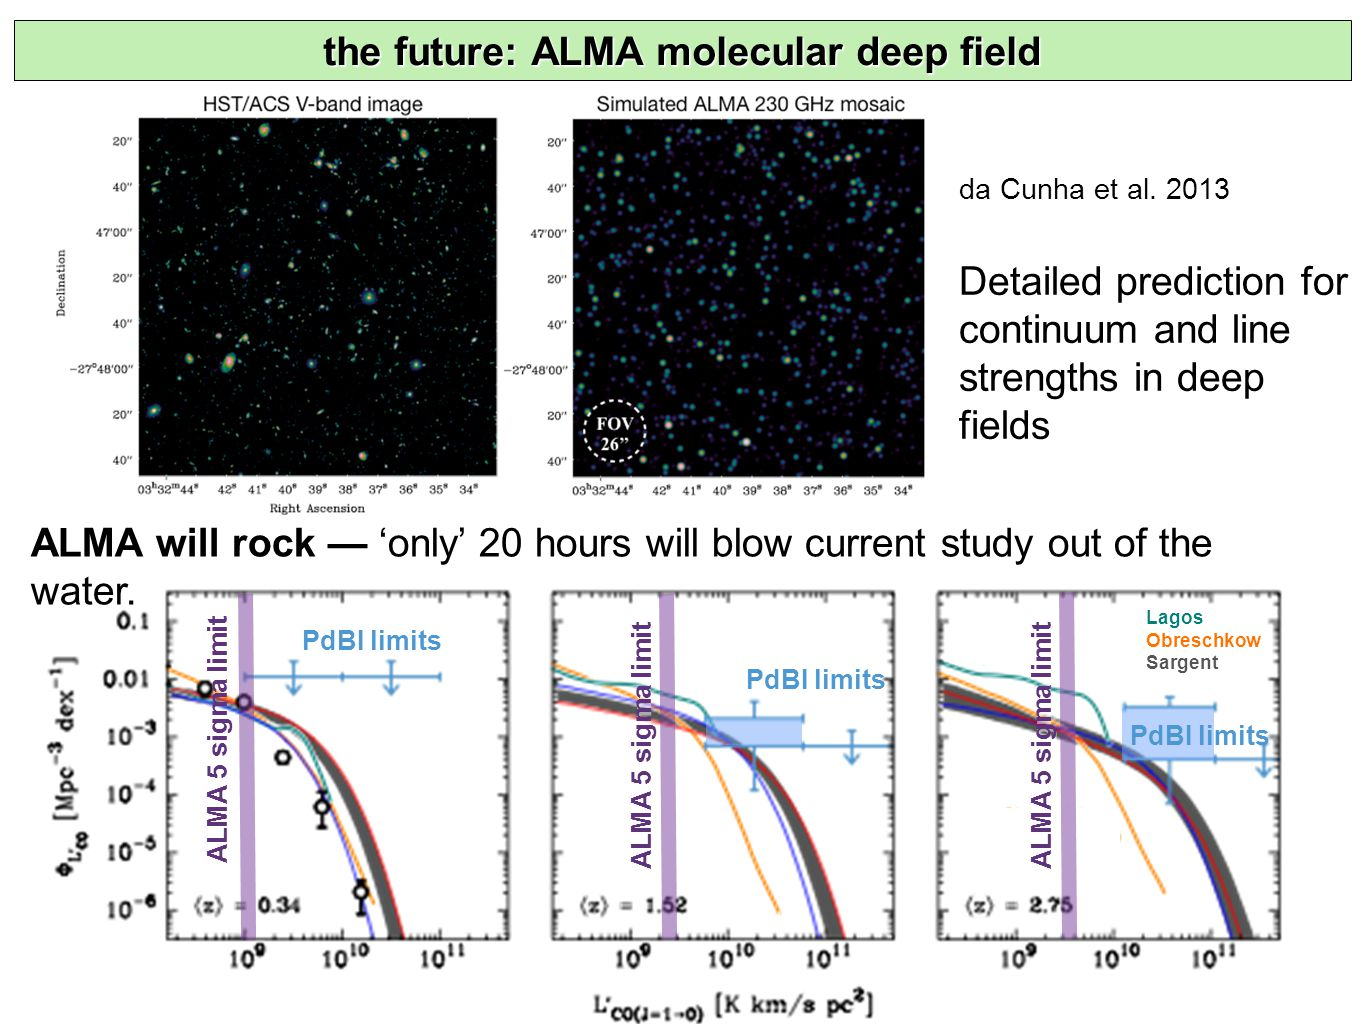 ALMA 5 sigma limit PdBI limits Lagos Obreschkow Sargent the future: ALMA molecular deep field ALMA will rock — 'only' 20 hours will blow current study out of the water.